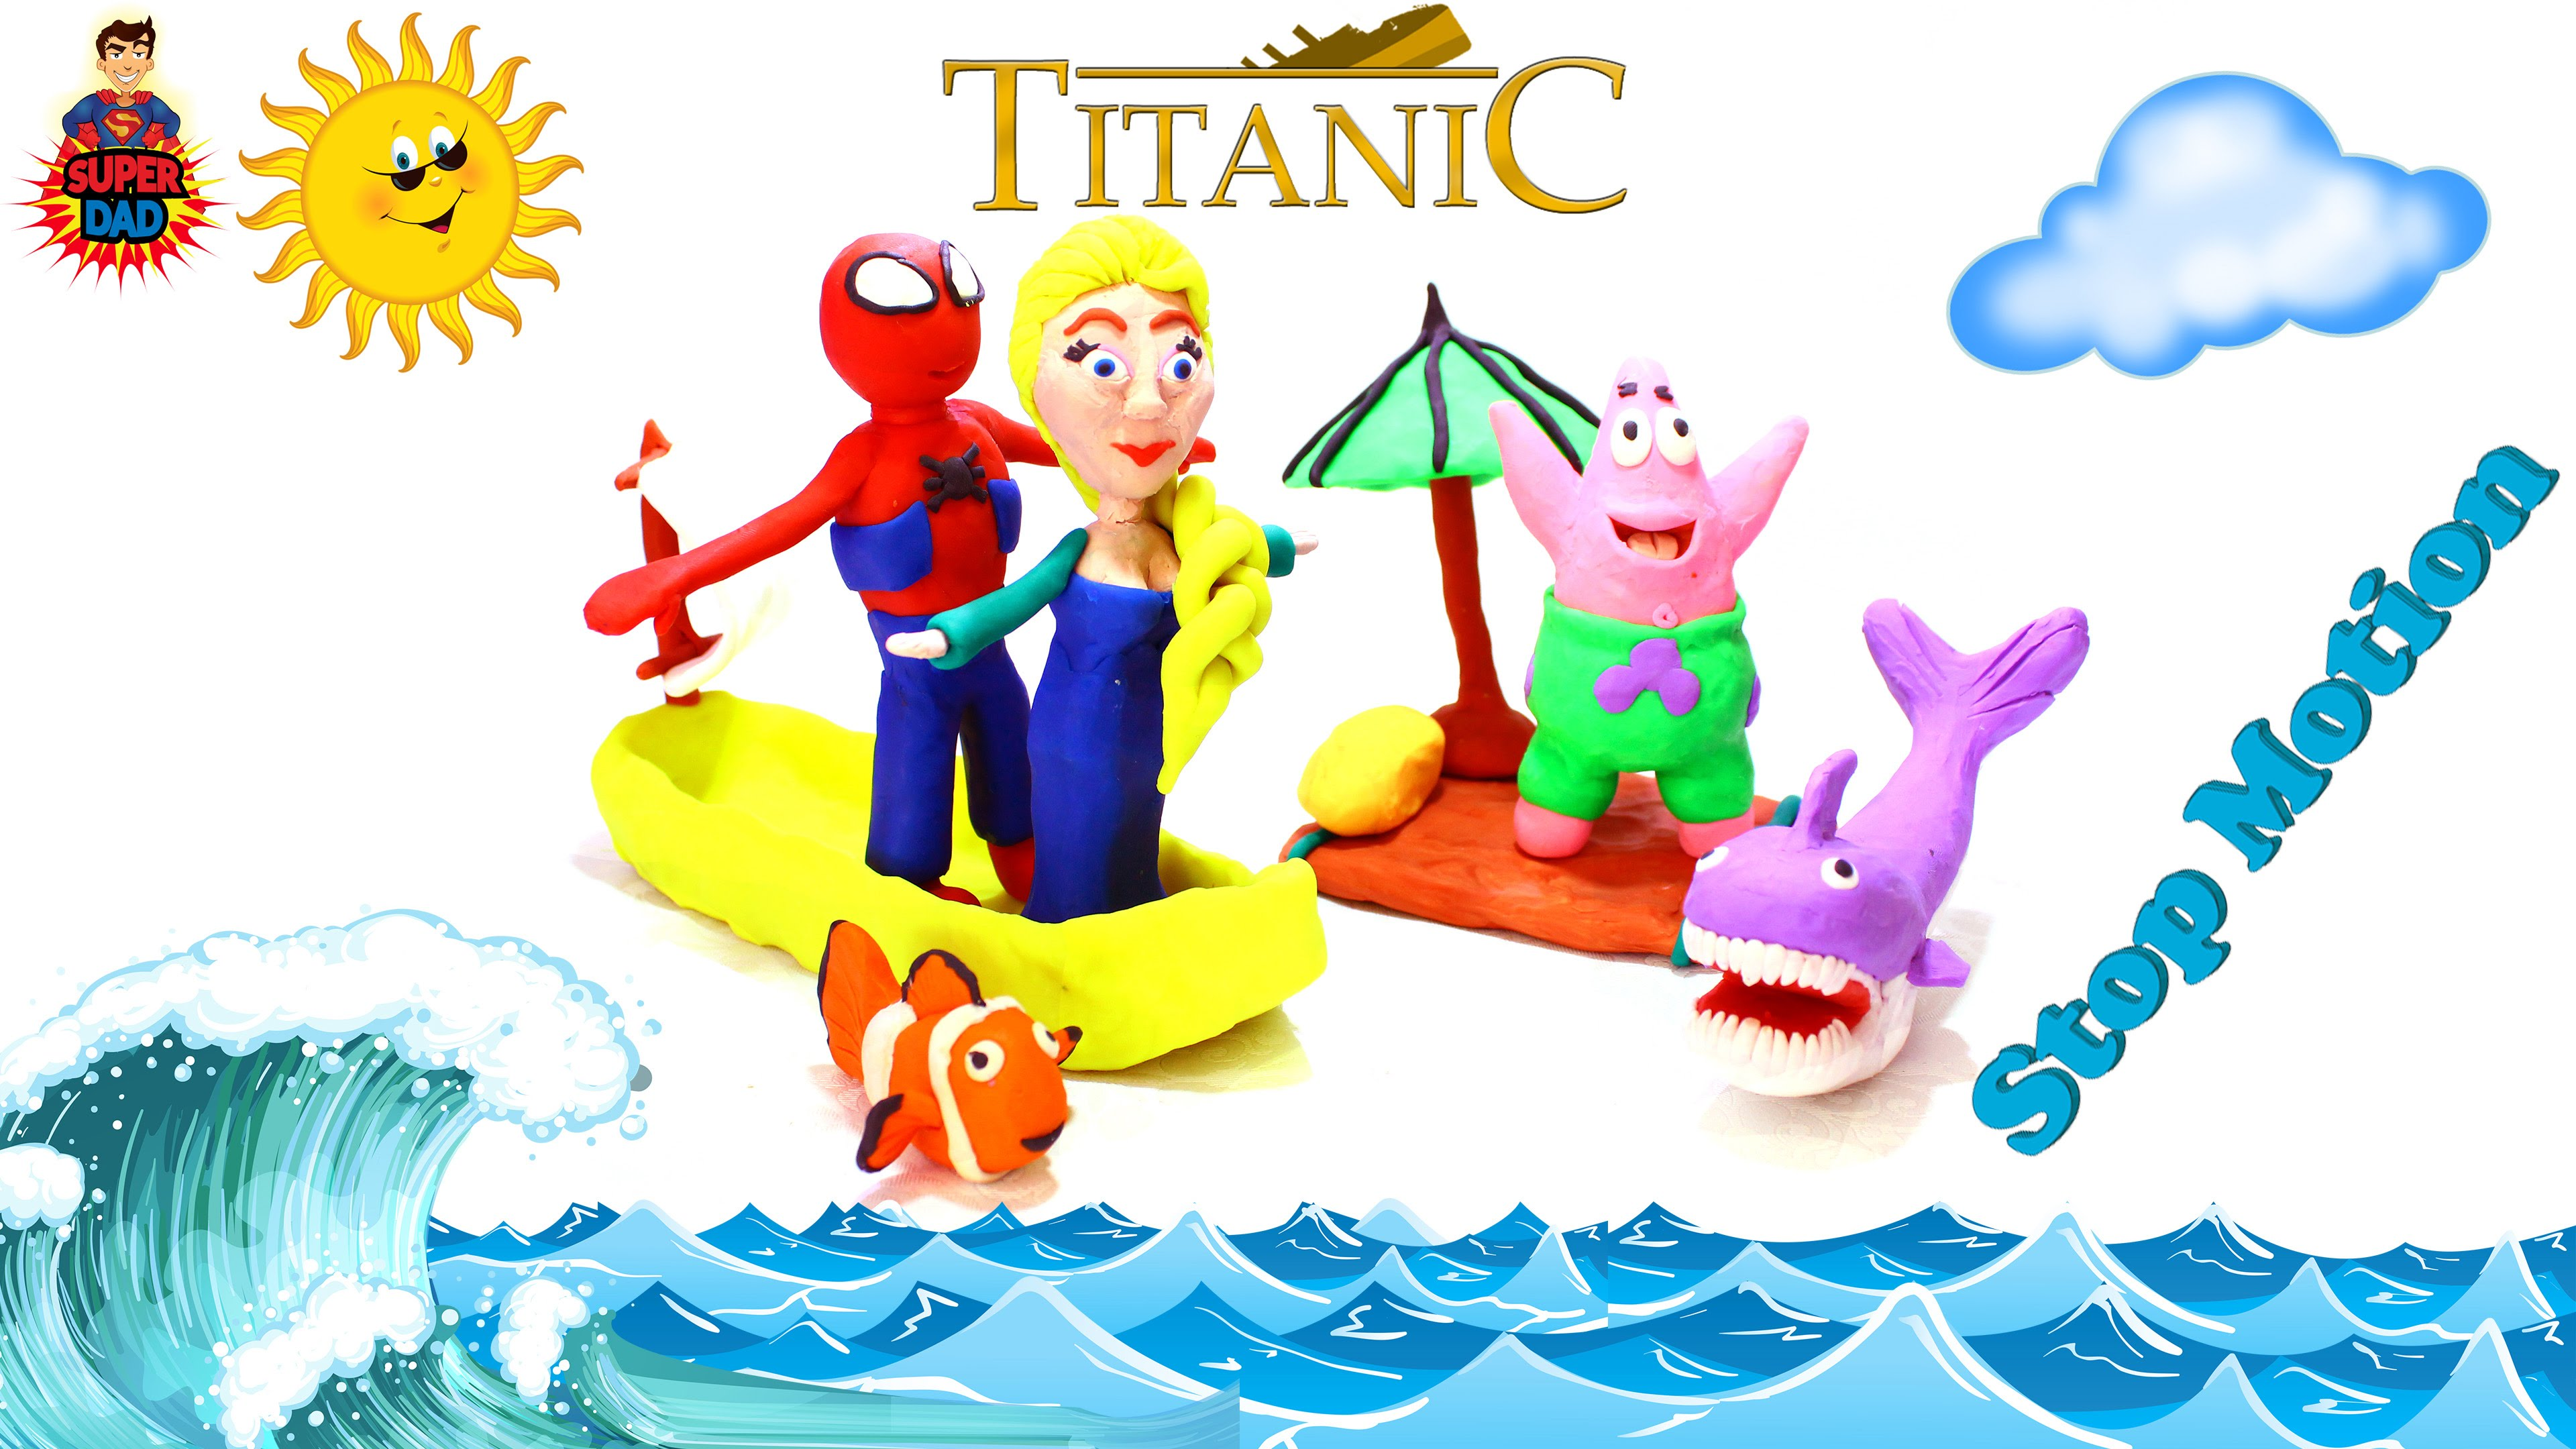 Titanic clipart real Spiderman Frozen and Titanic Elsa